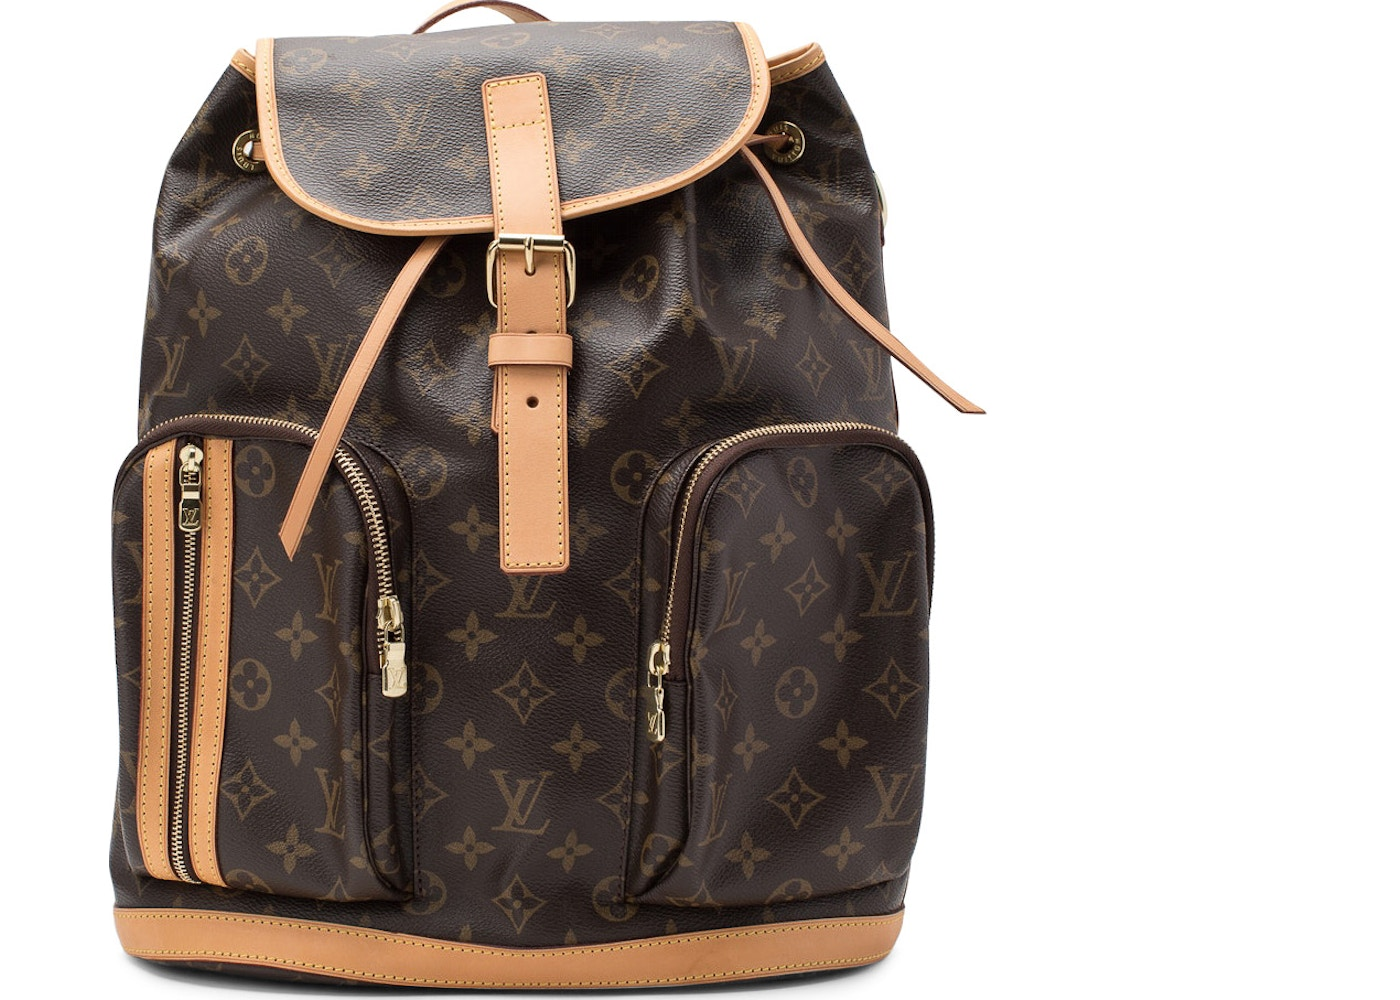 8b10cbe8ed42a Louis Vuitton Backpack Bosphore Monogram Brown. Monogram Brown